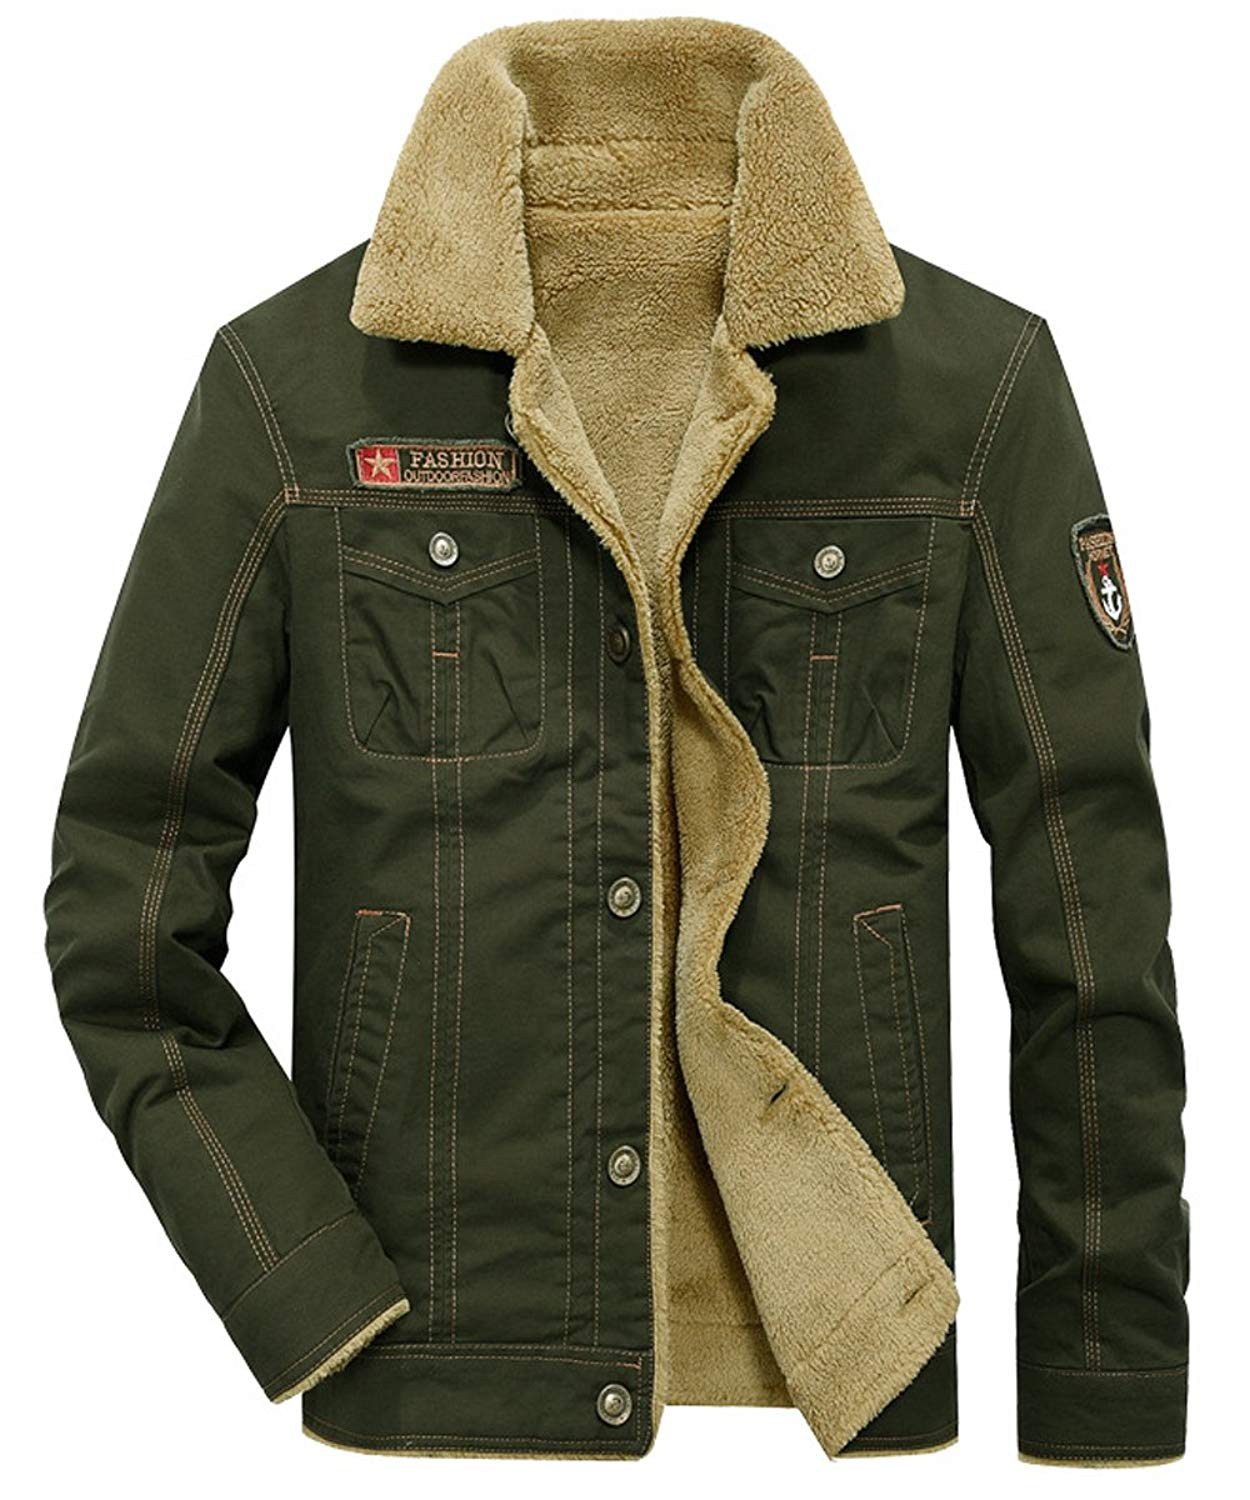 a1644b5393 Get Quotations · DUNKINBO Men s Cotton Outdoors Casual Fleece Military  Cargo Jacket Outwear Parka Winter Coat